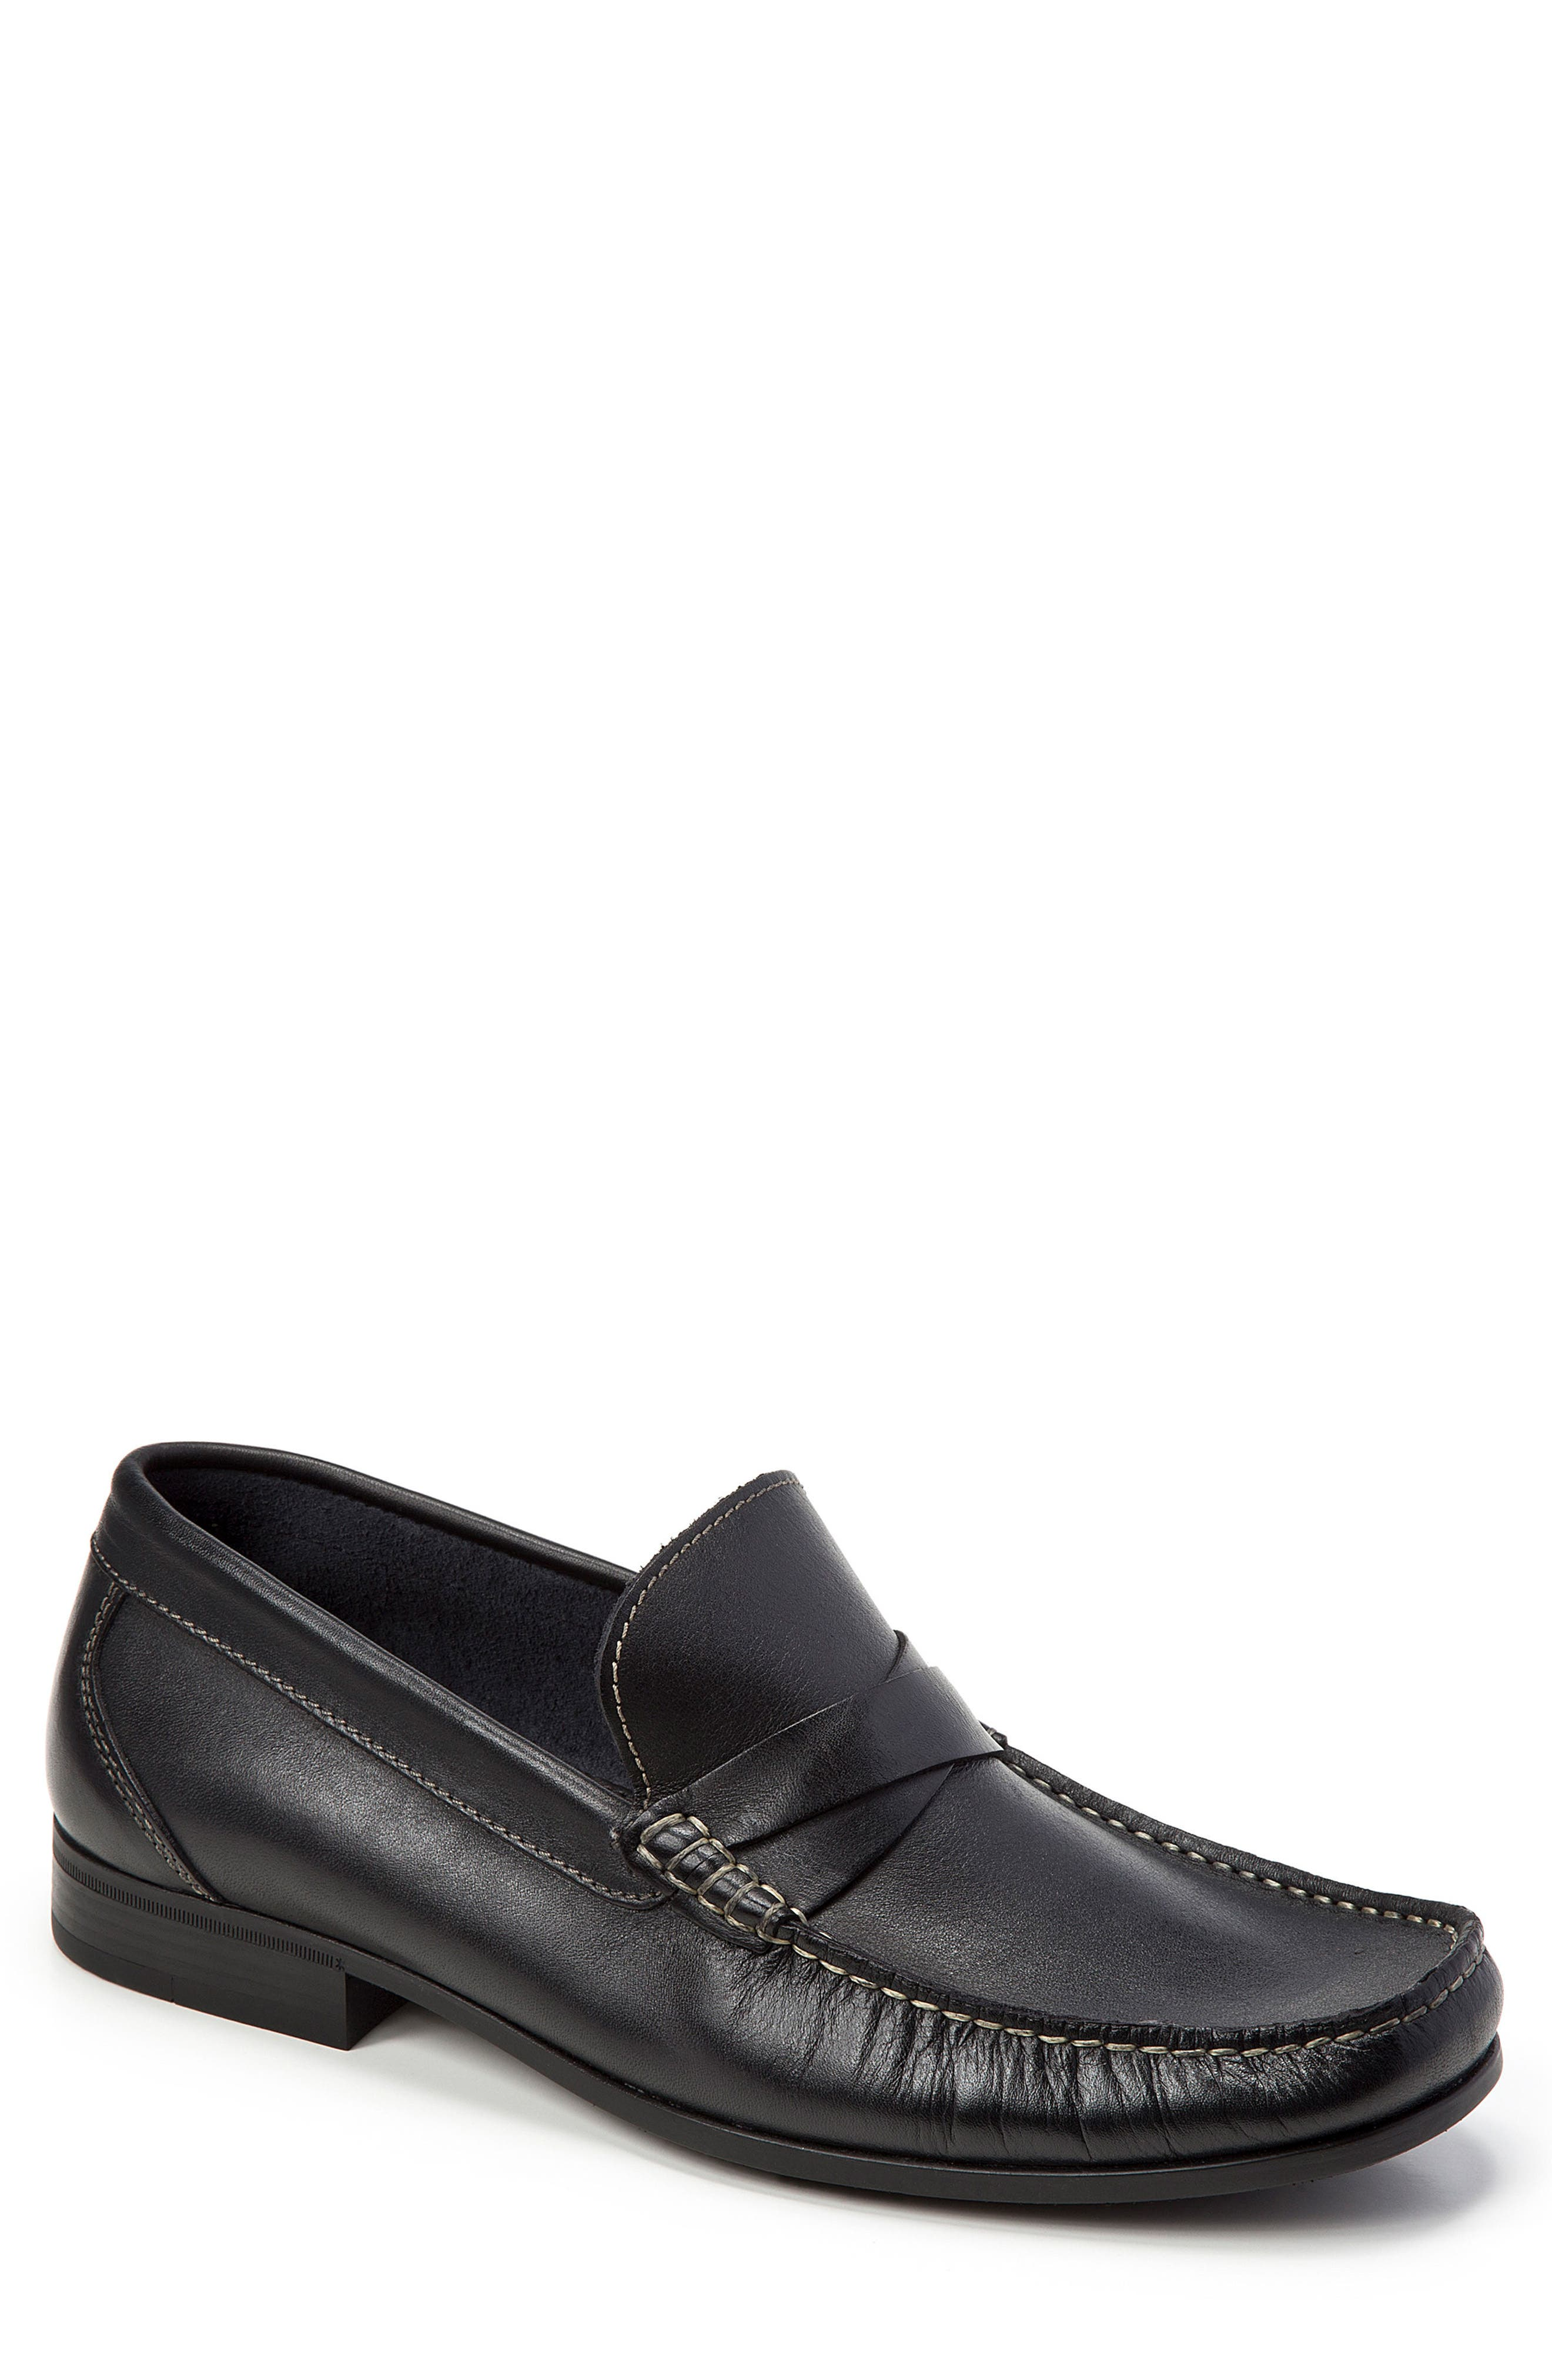 Abruzo Cross Strap Loafer,                         Main,                         color, BLACK